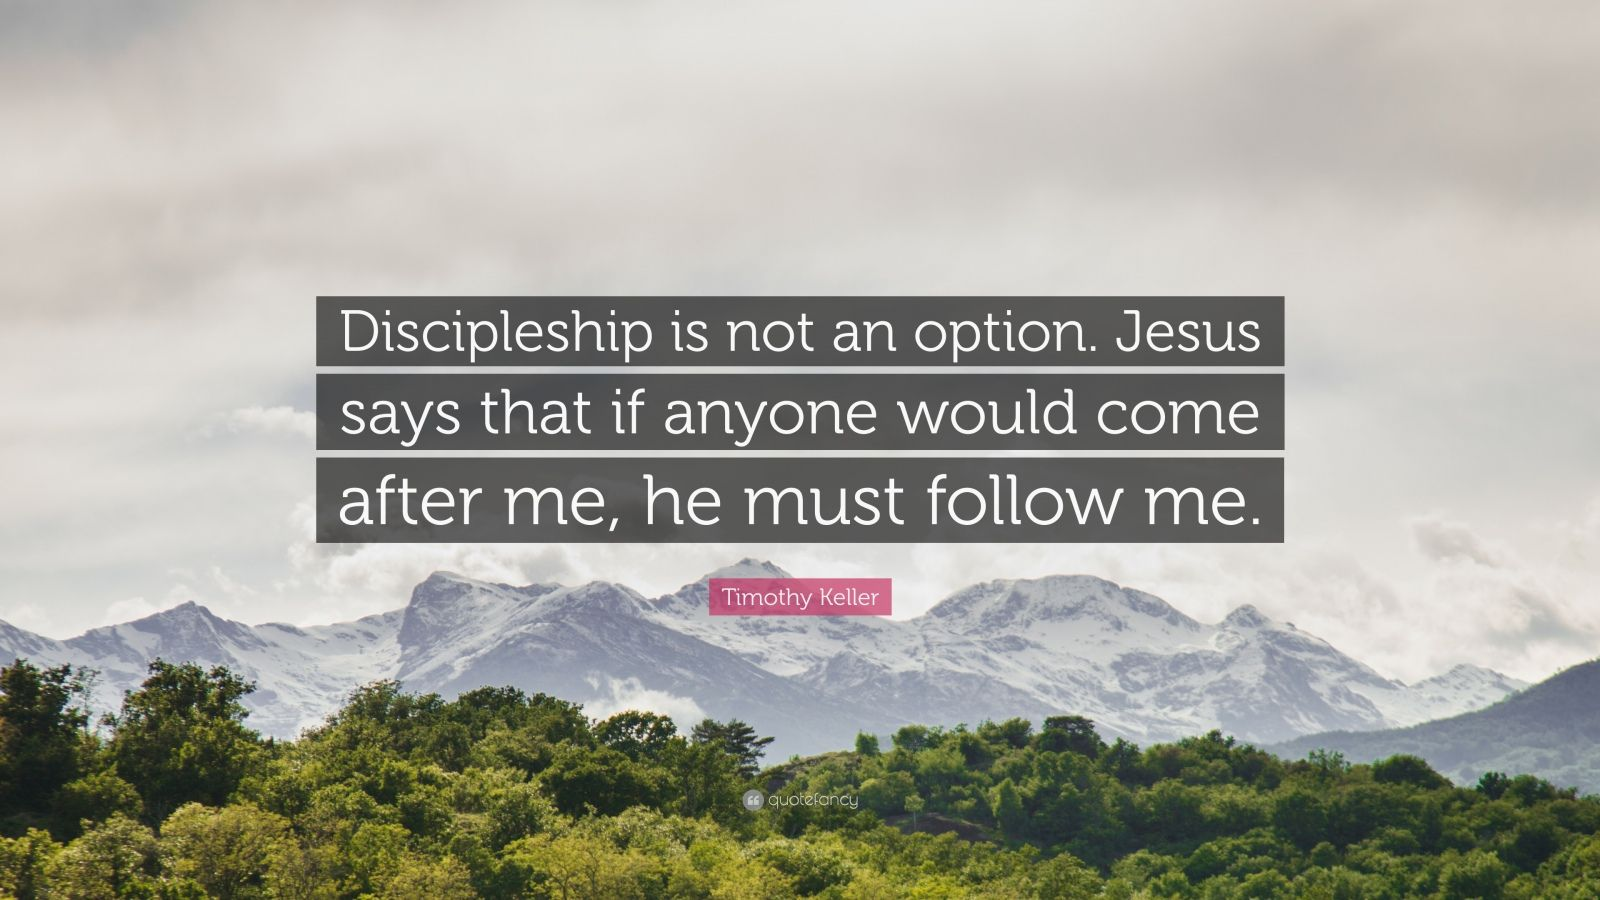 """Timothy Keller Quote: """"Discipleship is not an option. Jesus says that if anyone would come after me, he must follow me."""""""